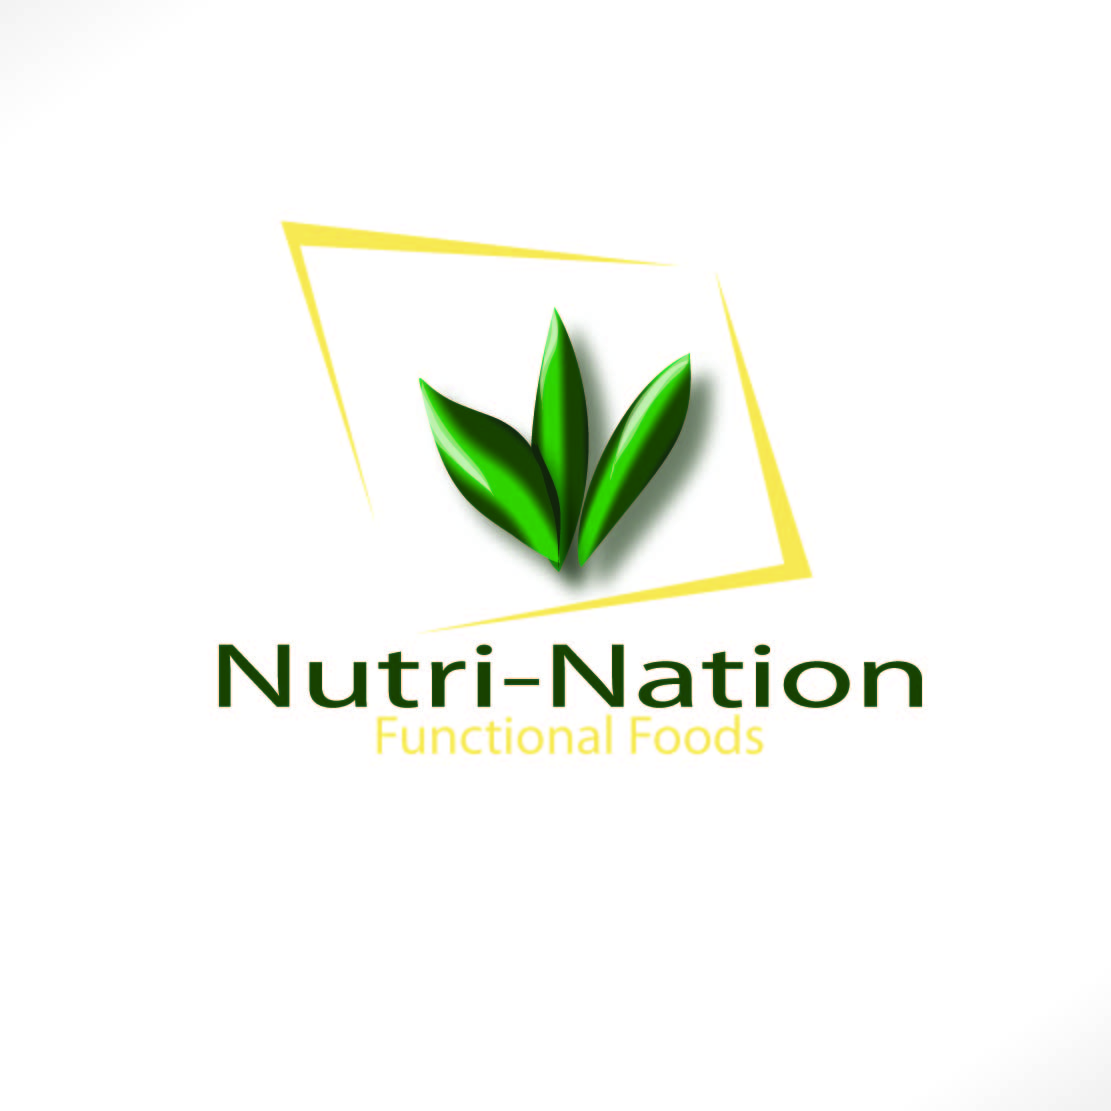 Logo Design by Saunter - Entry No. 108 in the Logo Design Contest Nutri-Nation Functional Foods Logo.